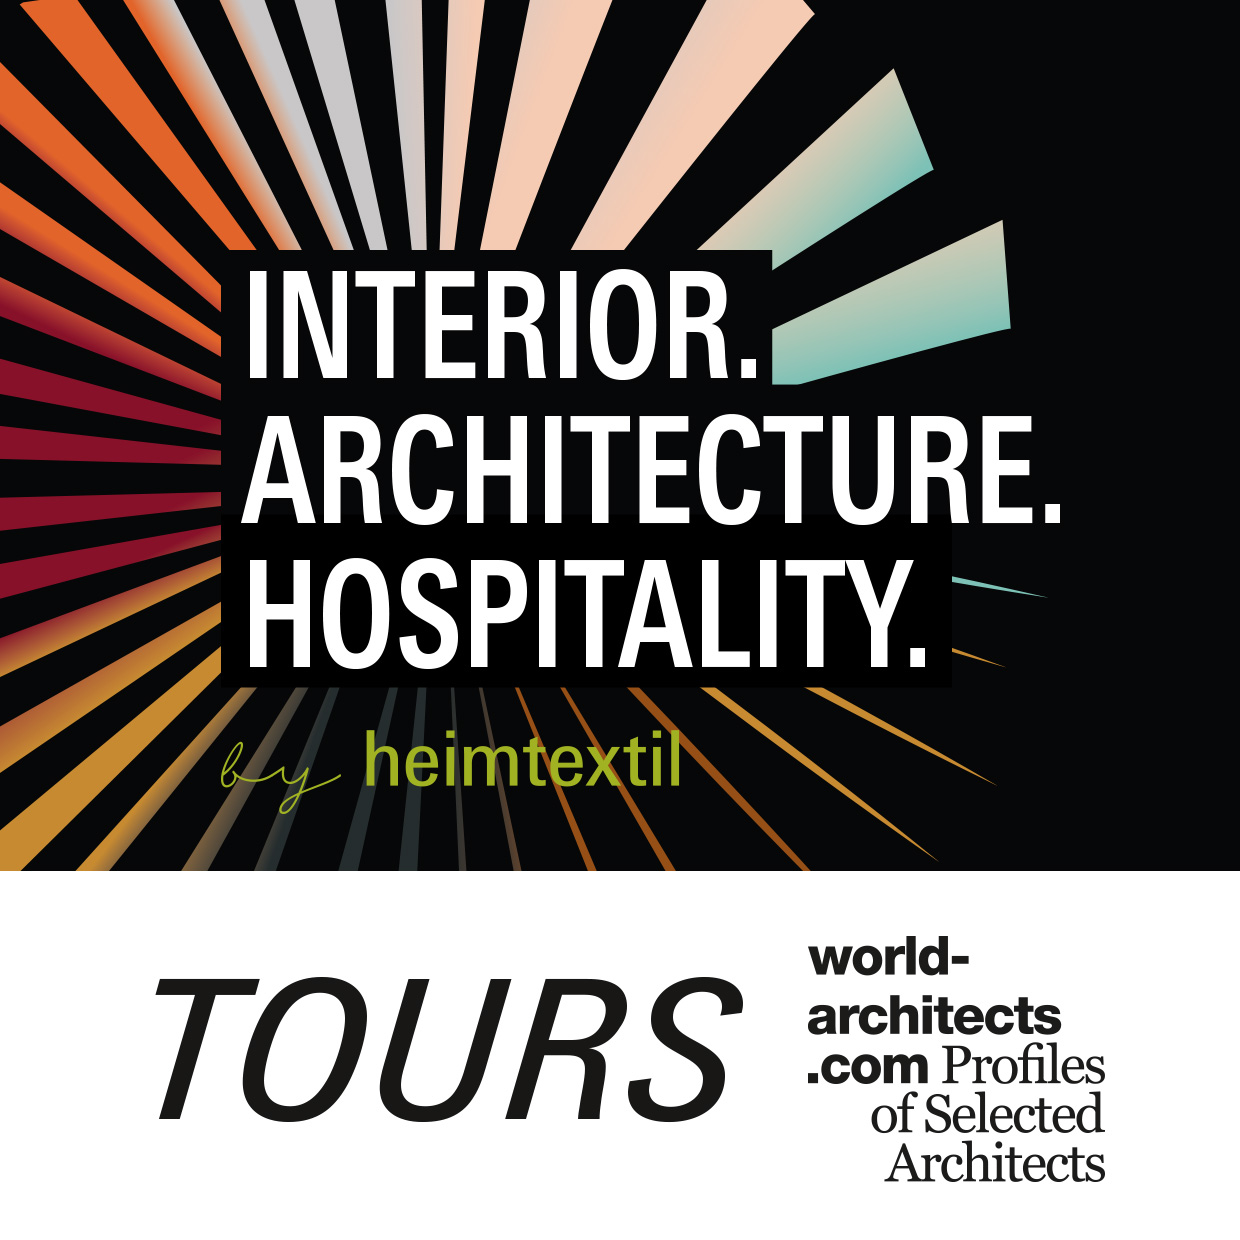 guided-tour-by-world-architects11